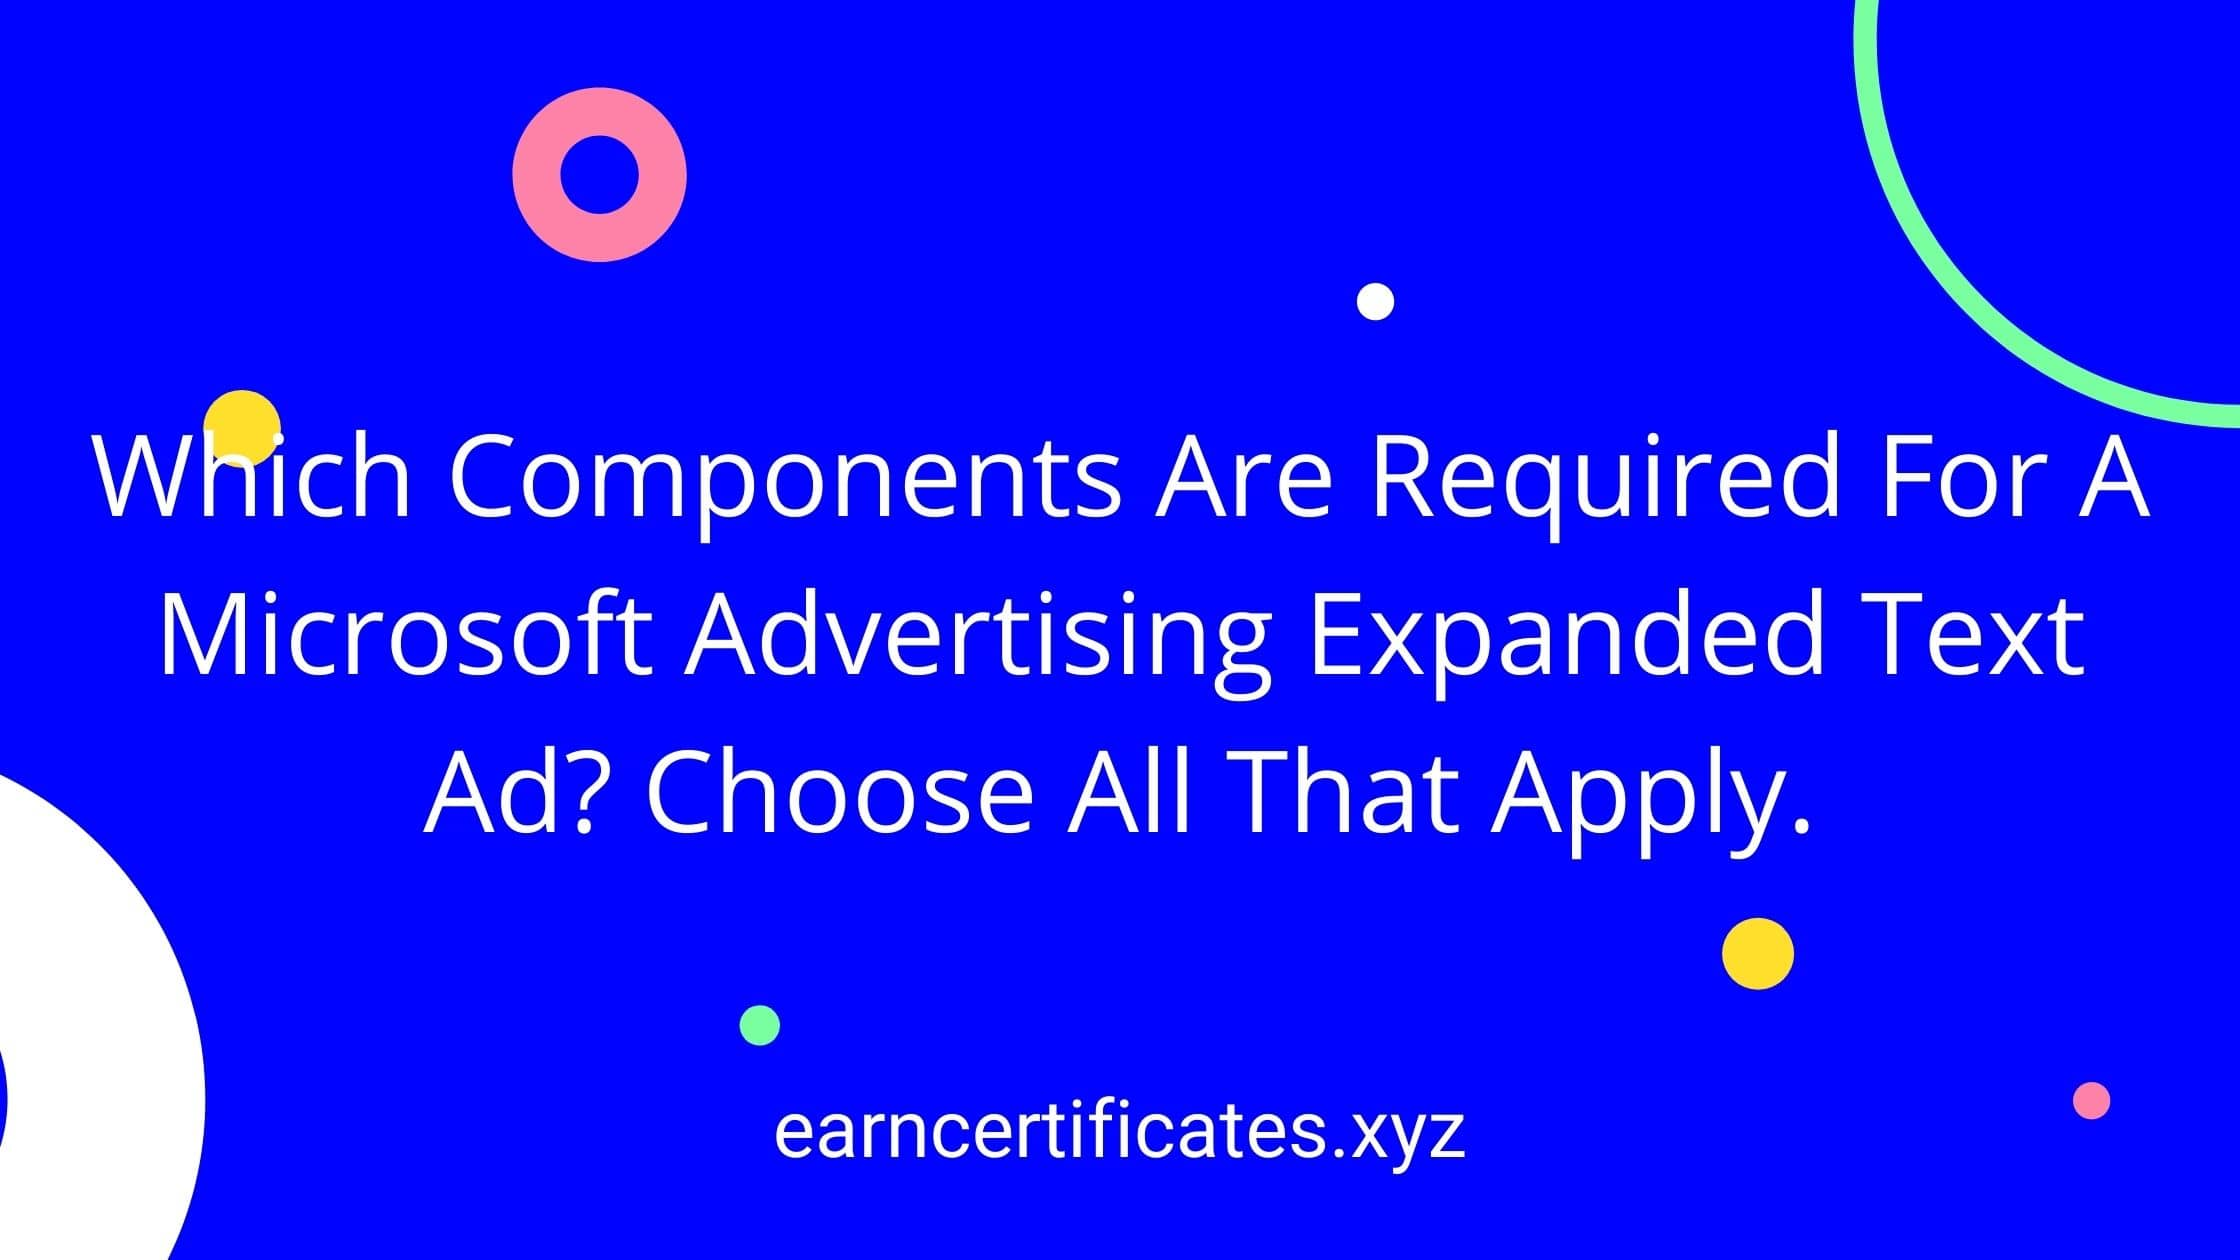 Which Components Are Required For A Microsoft Advertising Expanded Text Ad? Choose All That Apply.